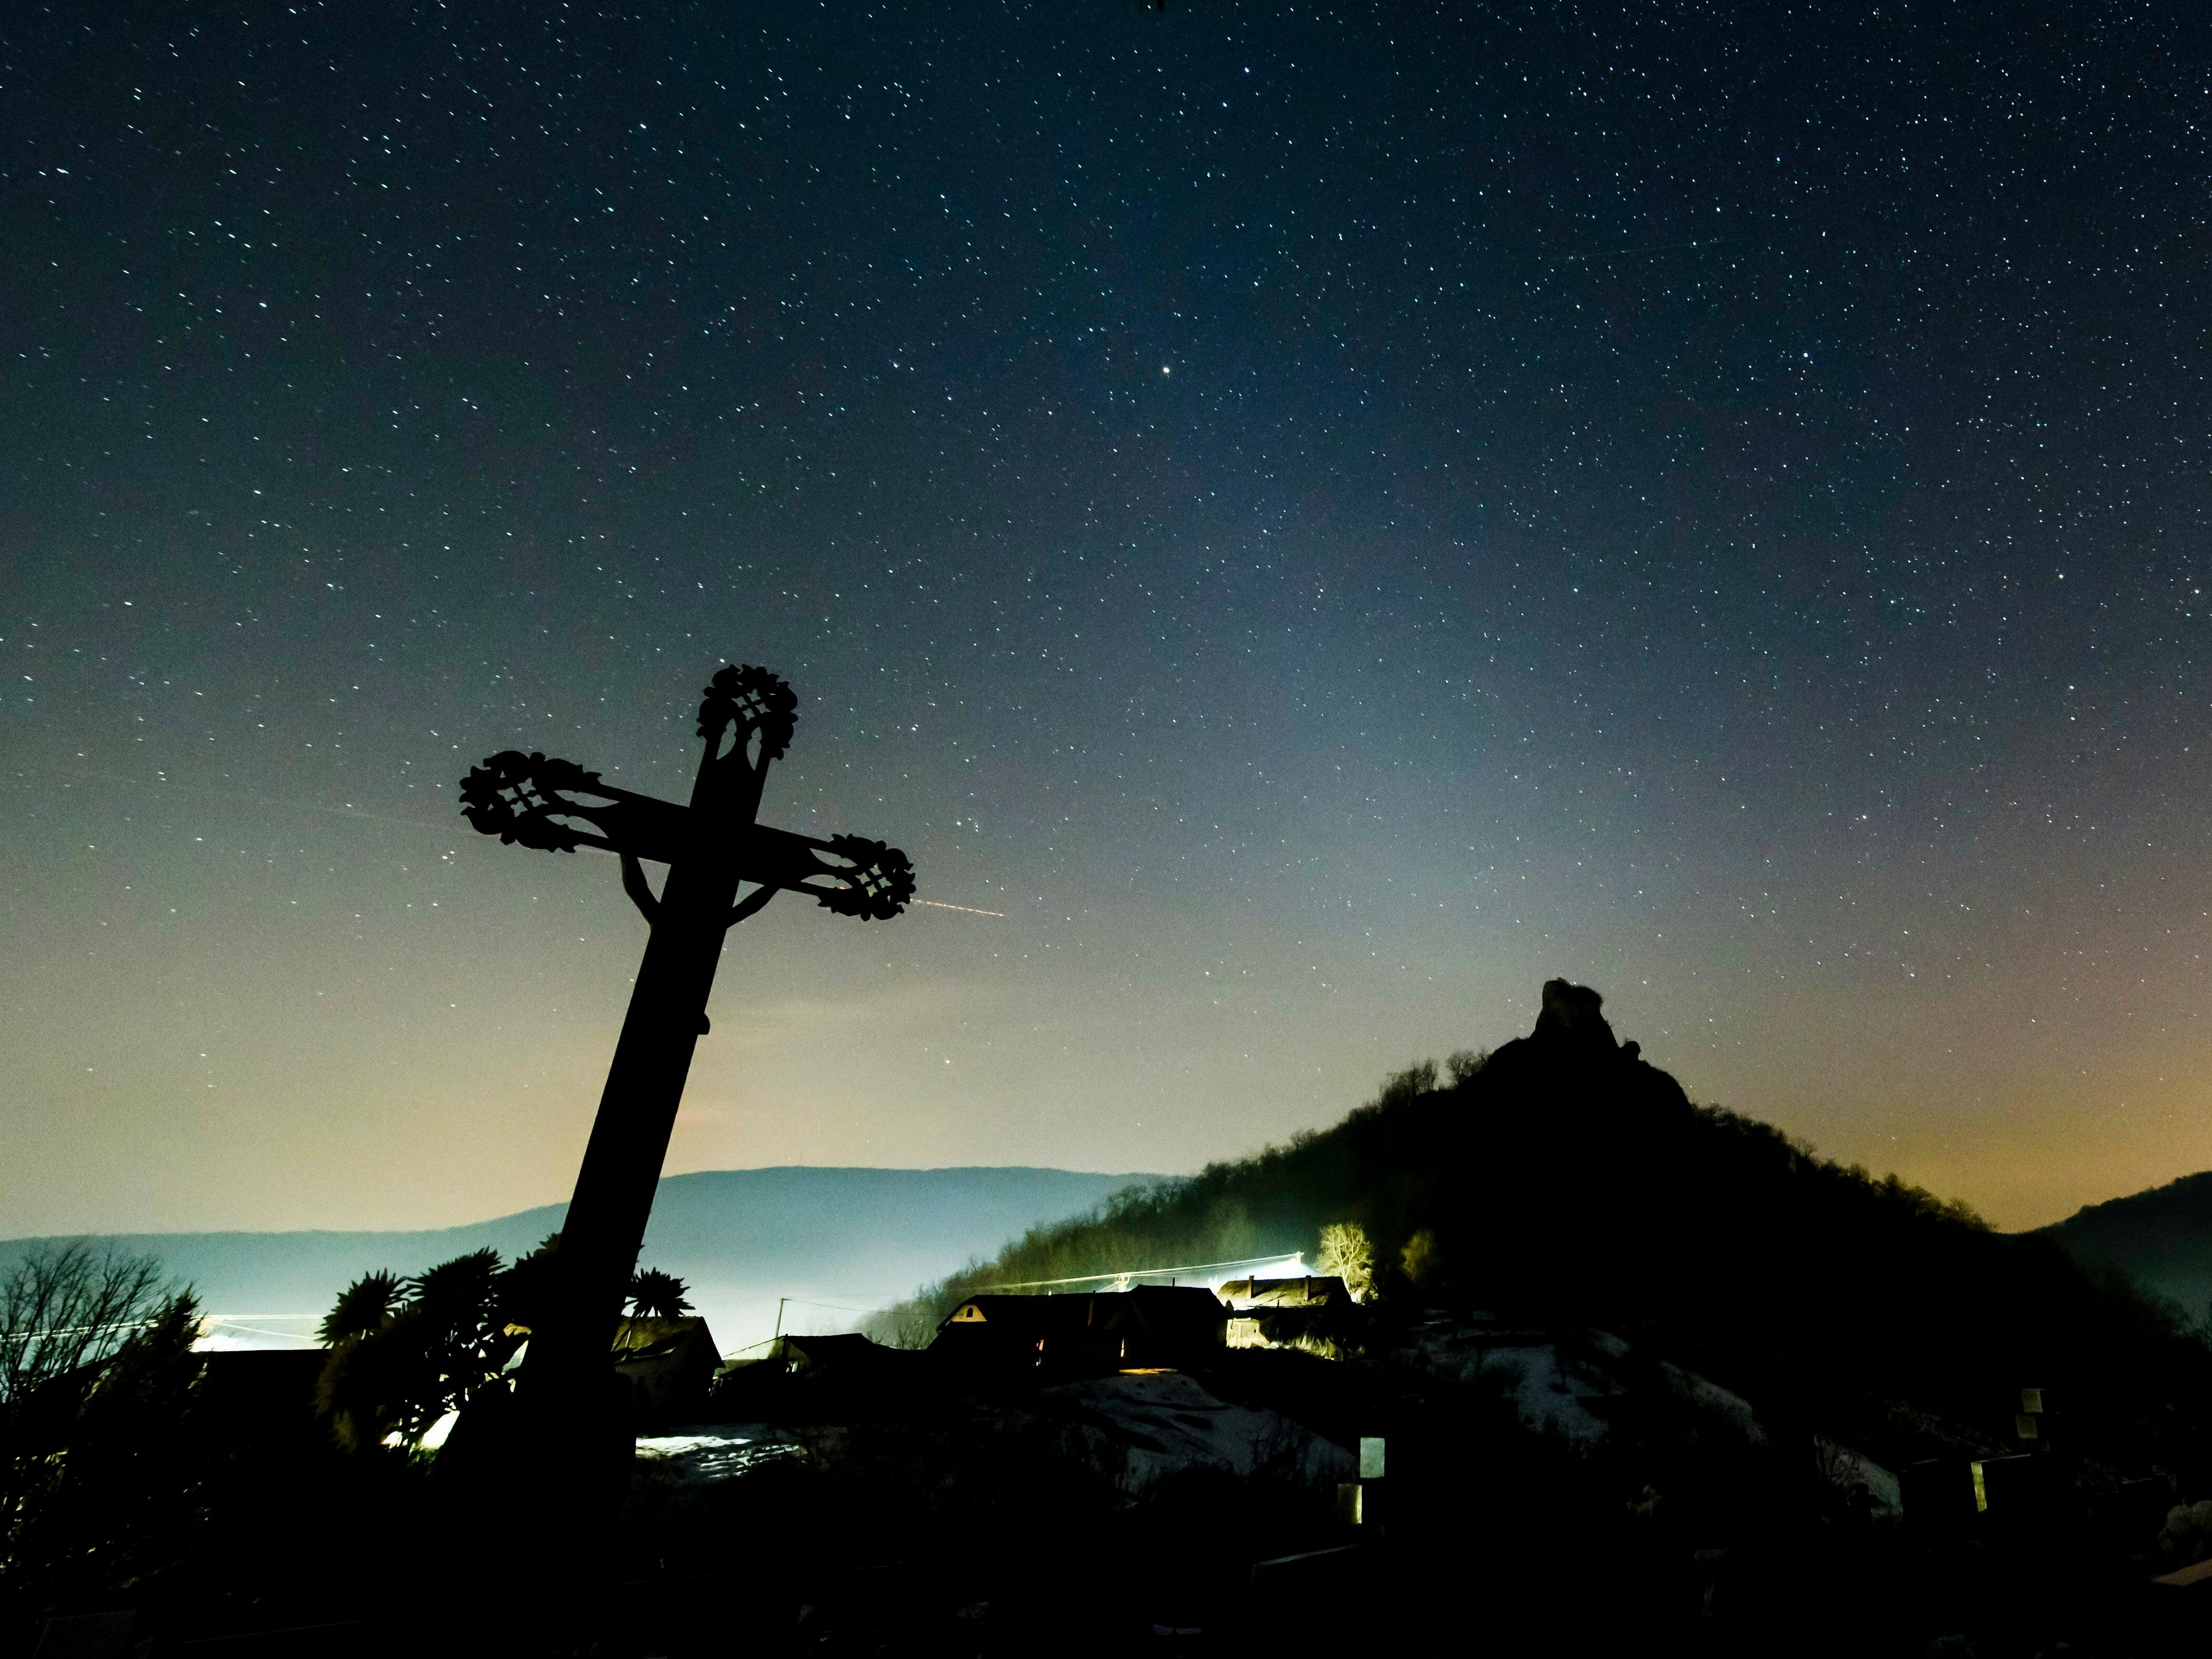 In a picture issued on Feb. 8, 2019 the white glow of zodiacal light is visible in the night sky as photographed near Hajnacka, southern Slovakia the night before. The faint light is caused by interplanetary dust reflecting sunlight. The astronomical phenomenon in the temperate zones is most clearly visible in February and March after sunset and in September and October before sunrise, when the zodiac is positioned at a steep angle to the horizon.